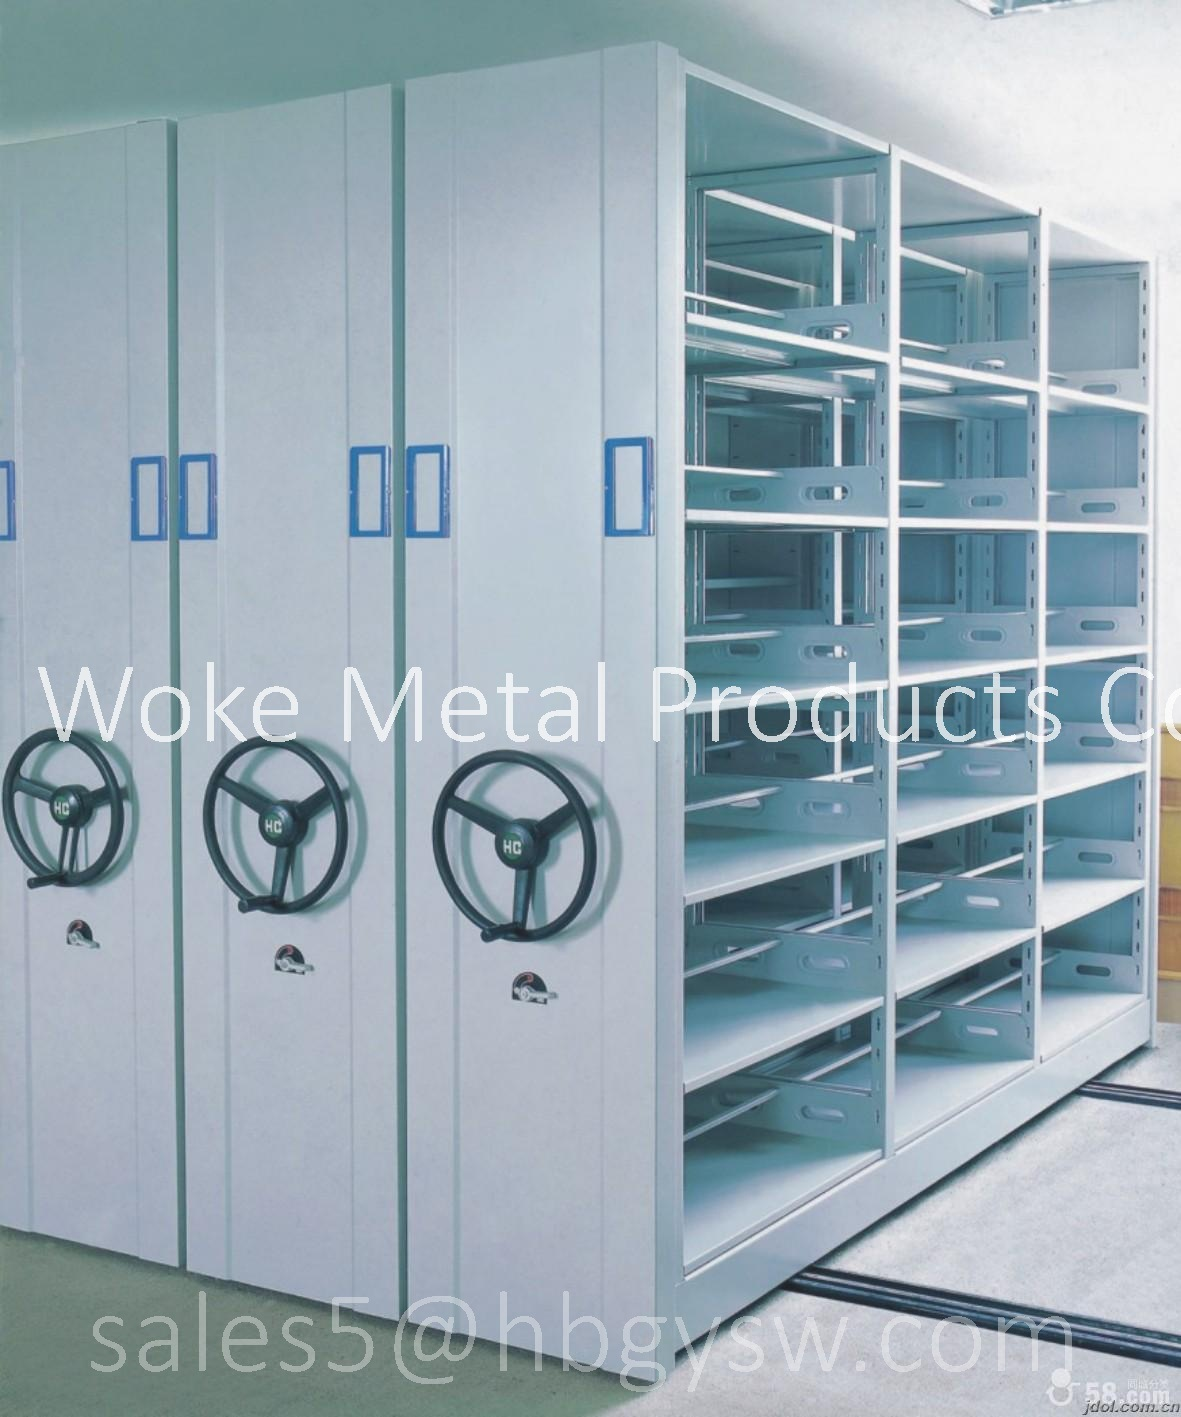 Compact Mobile Shelving for Storage